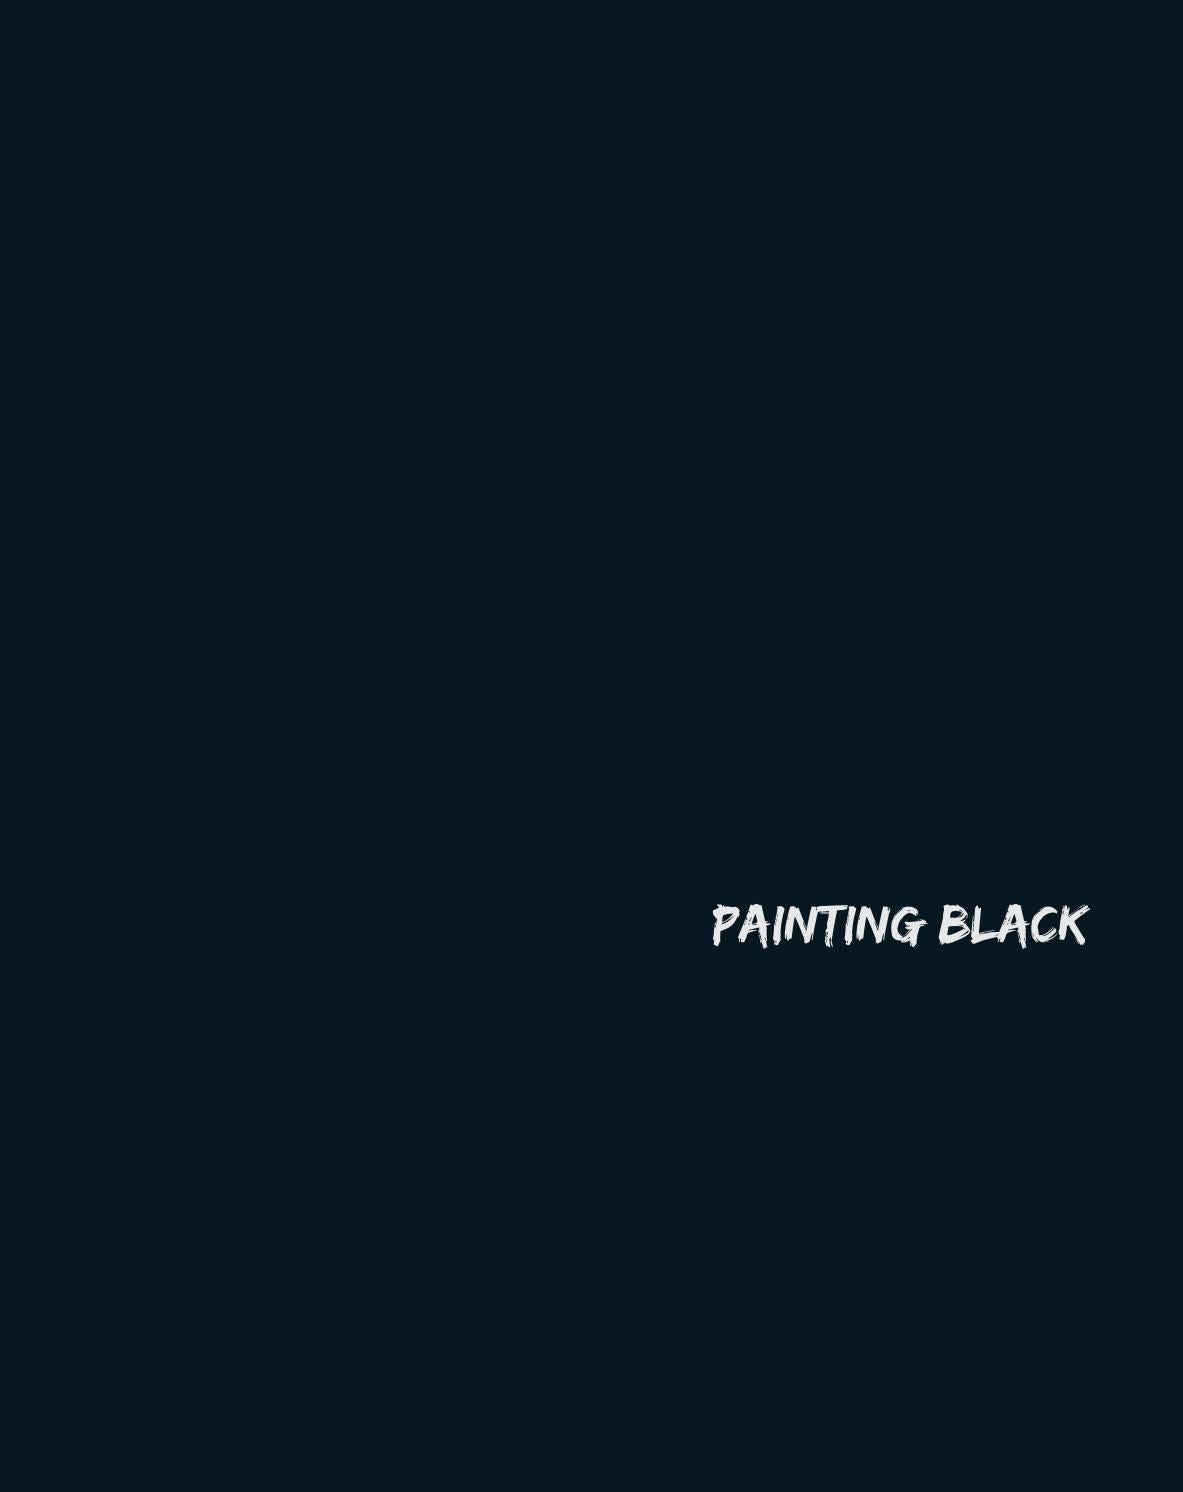 Catalog painting black – 42 artists from Europe and the United ...